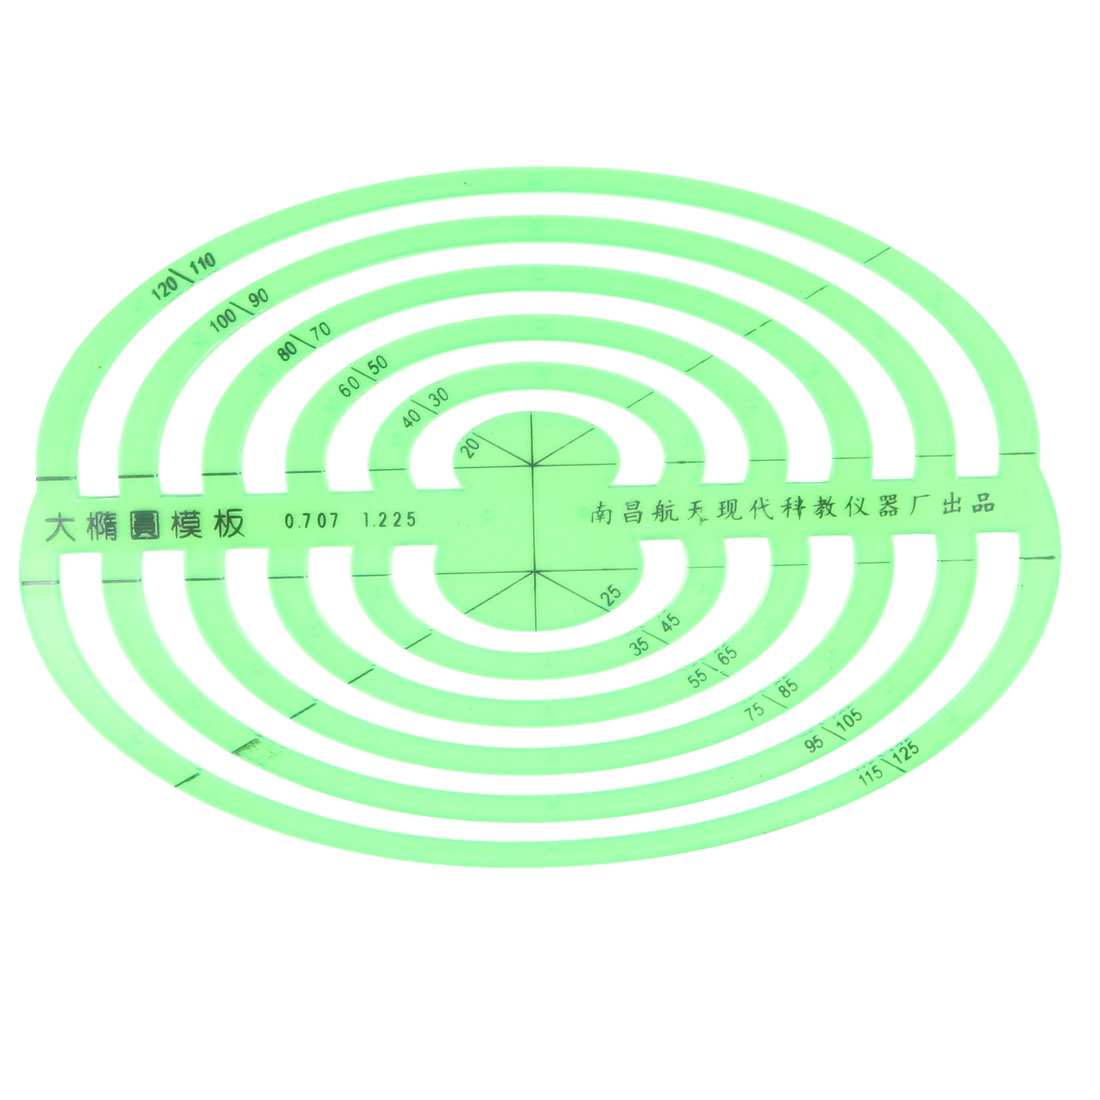 School Office Students Oval Circle Measuring Drawing Template Ruler Stationery